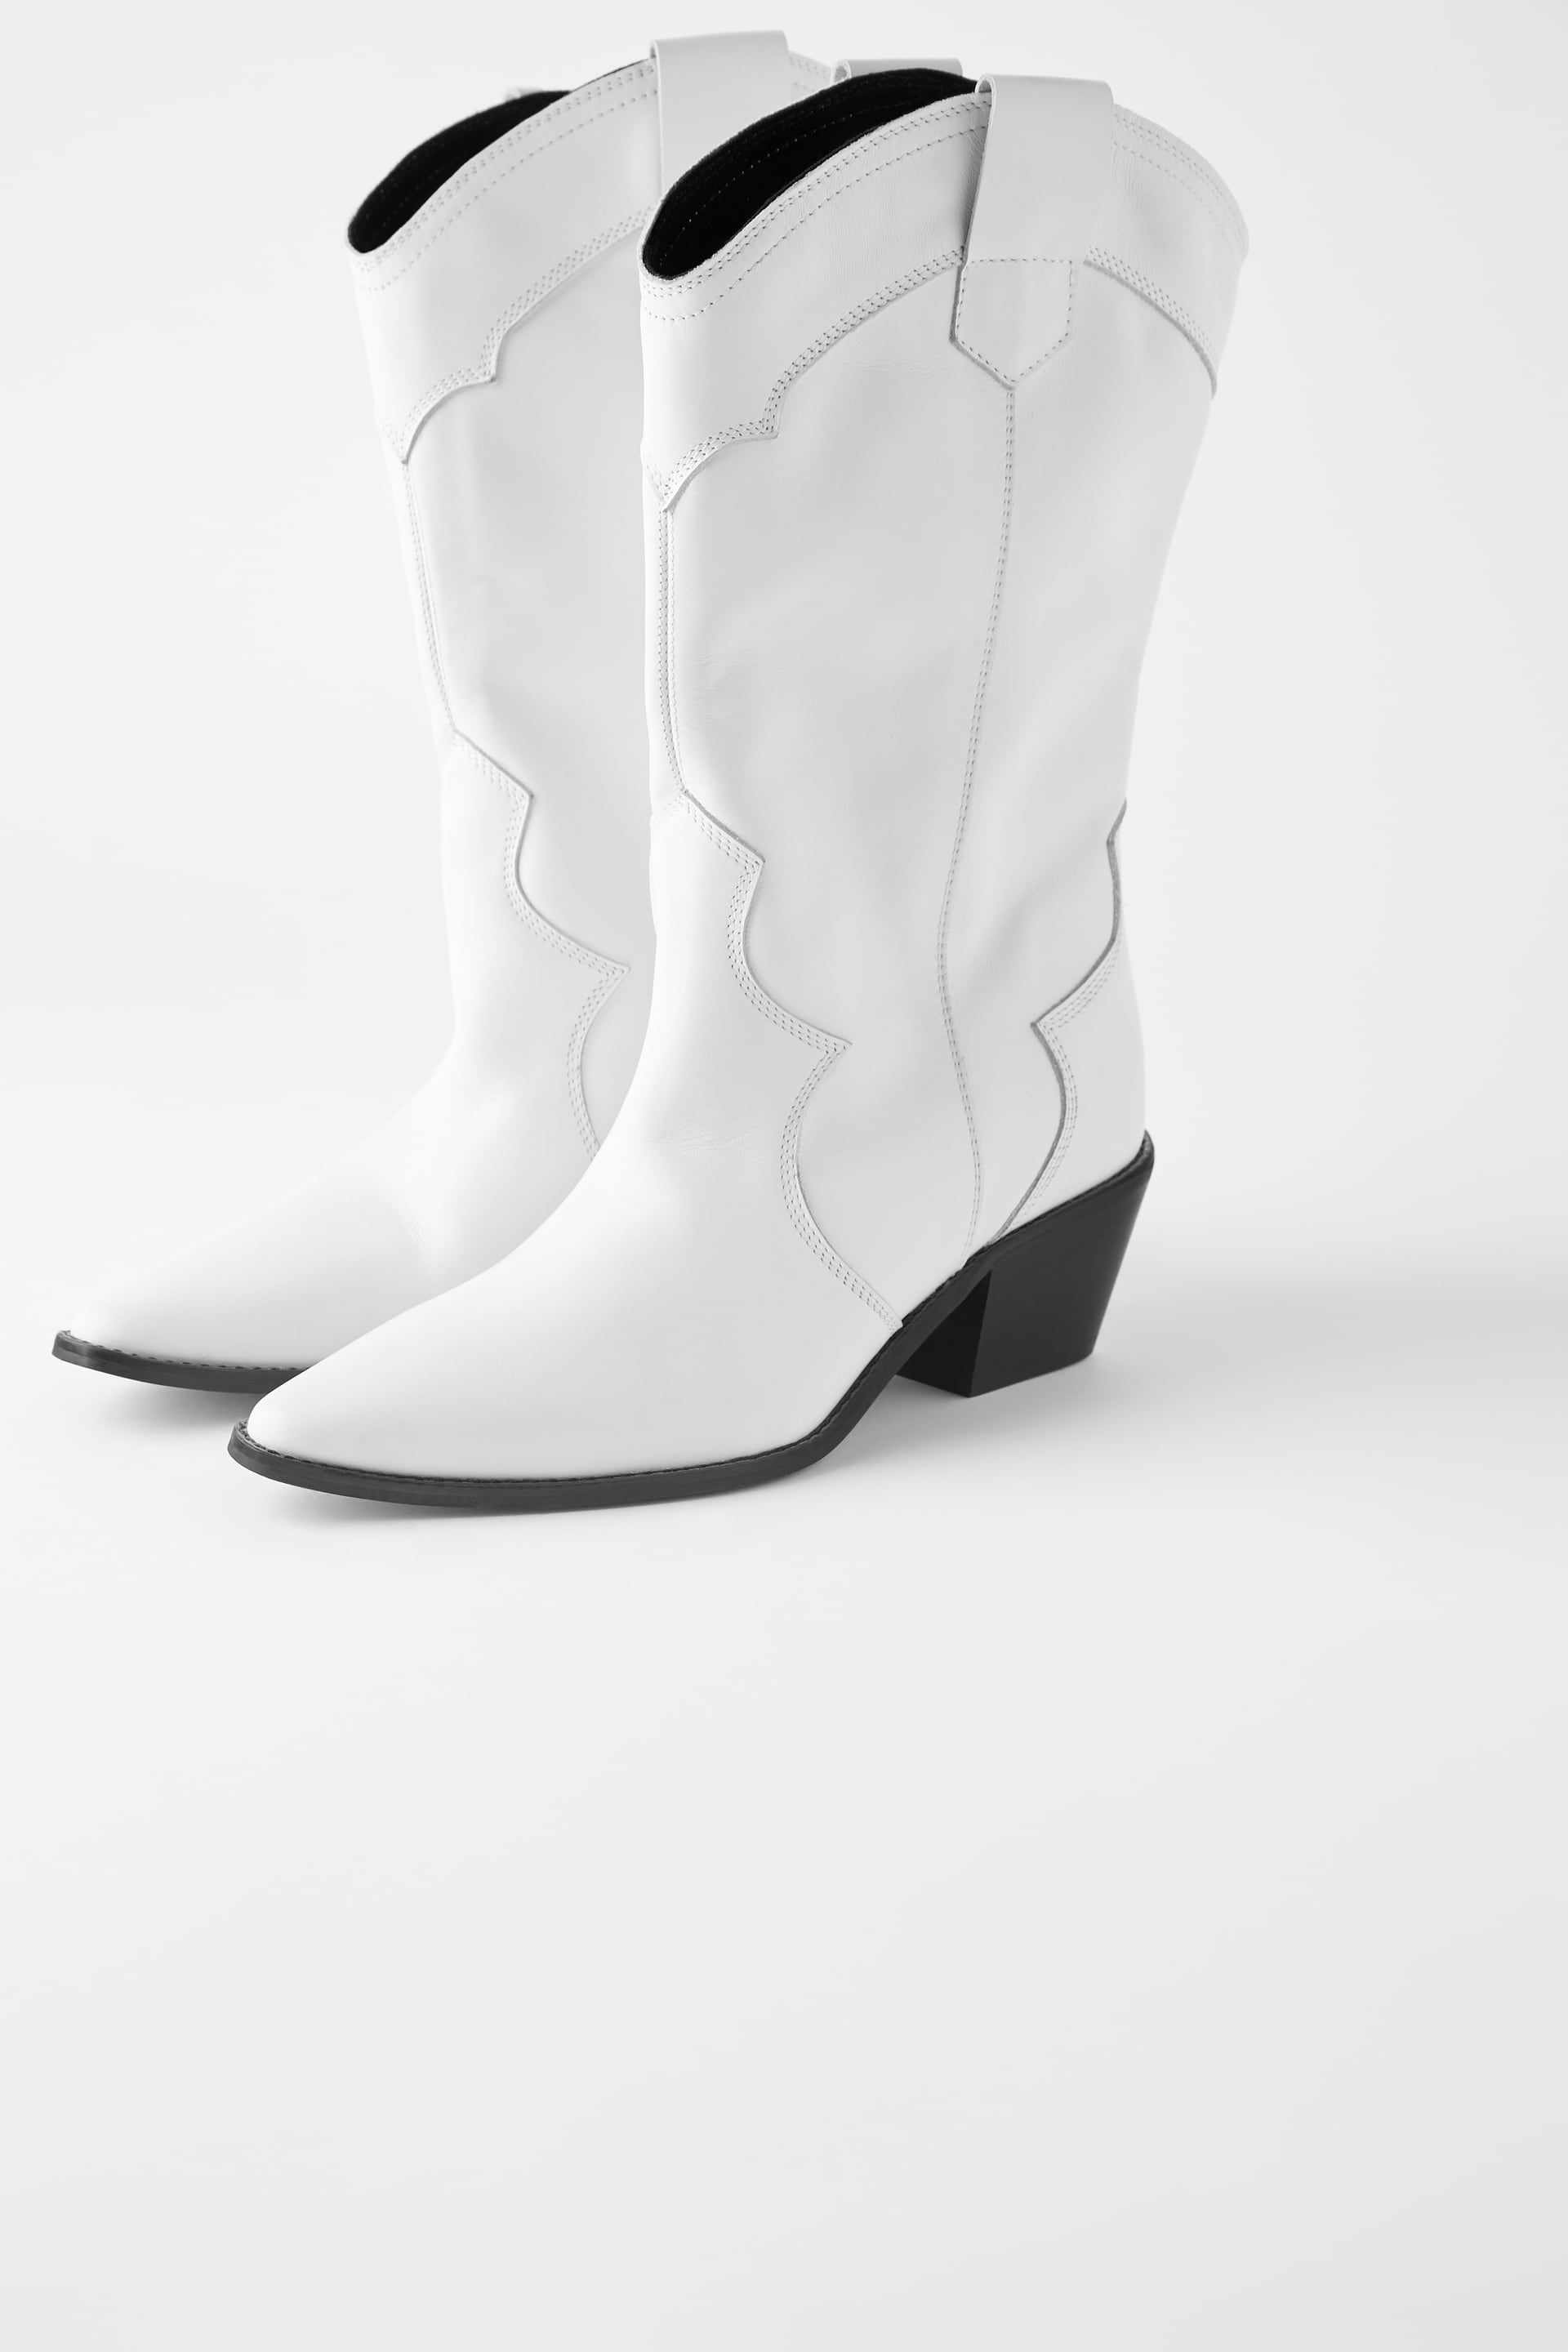 White Cowboy Boots Zara in 2020   Boots